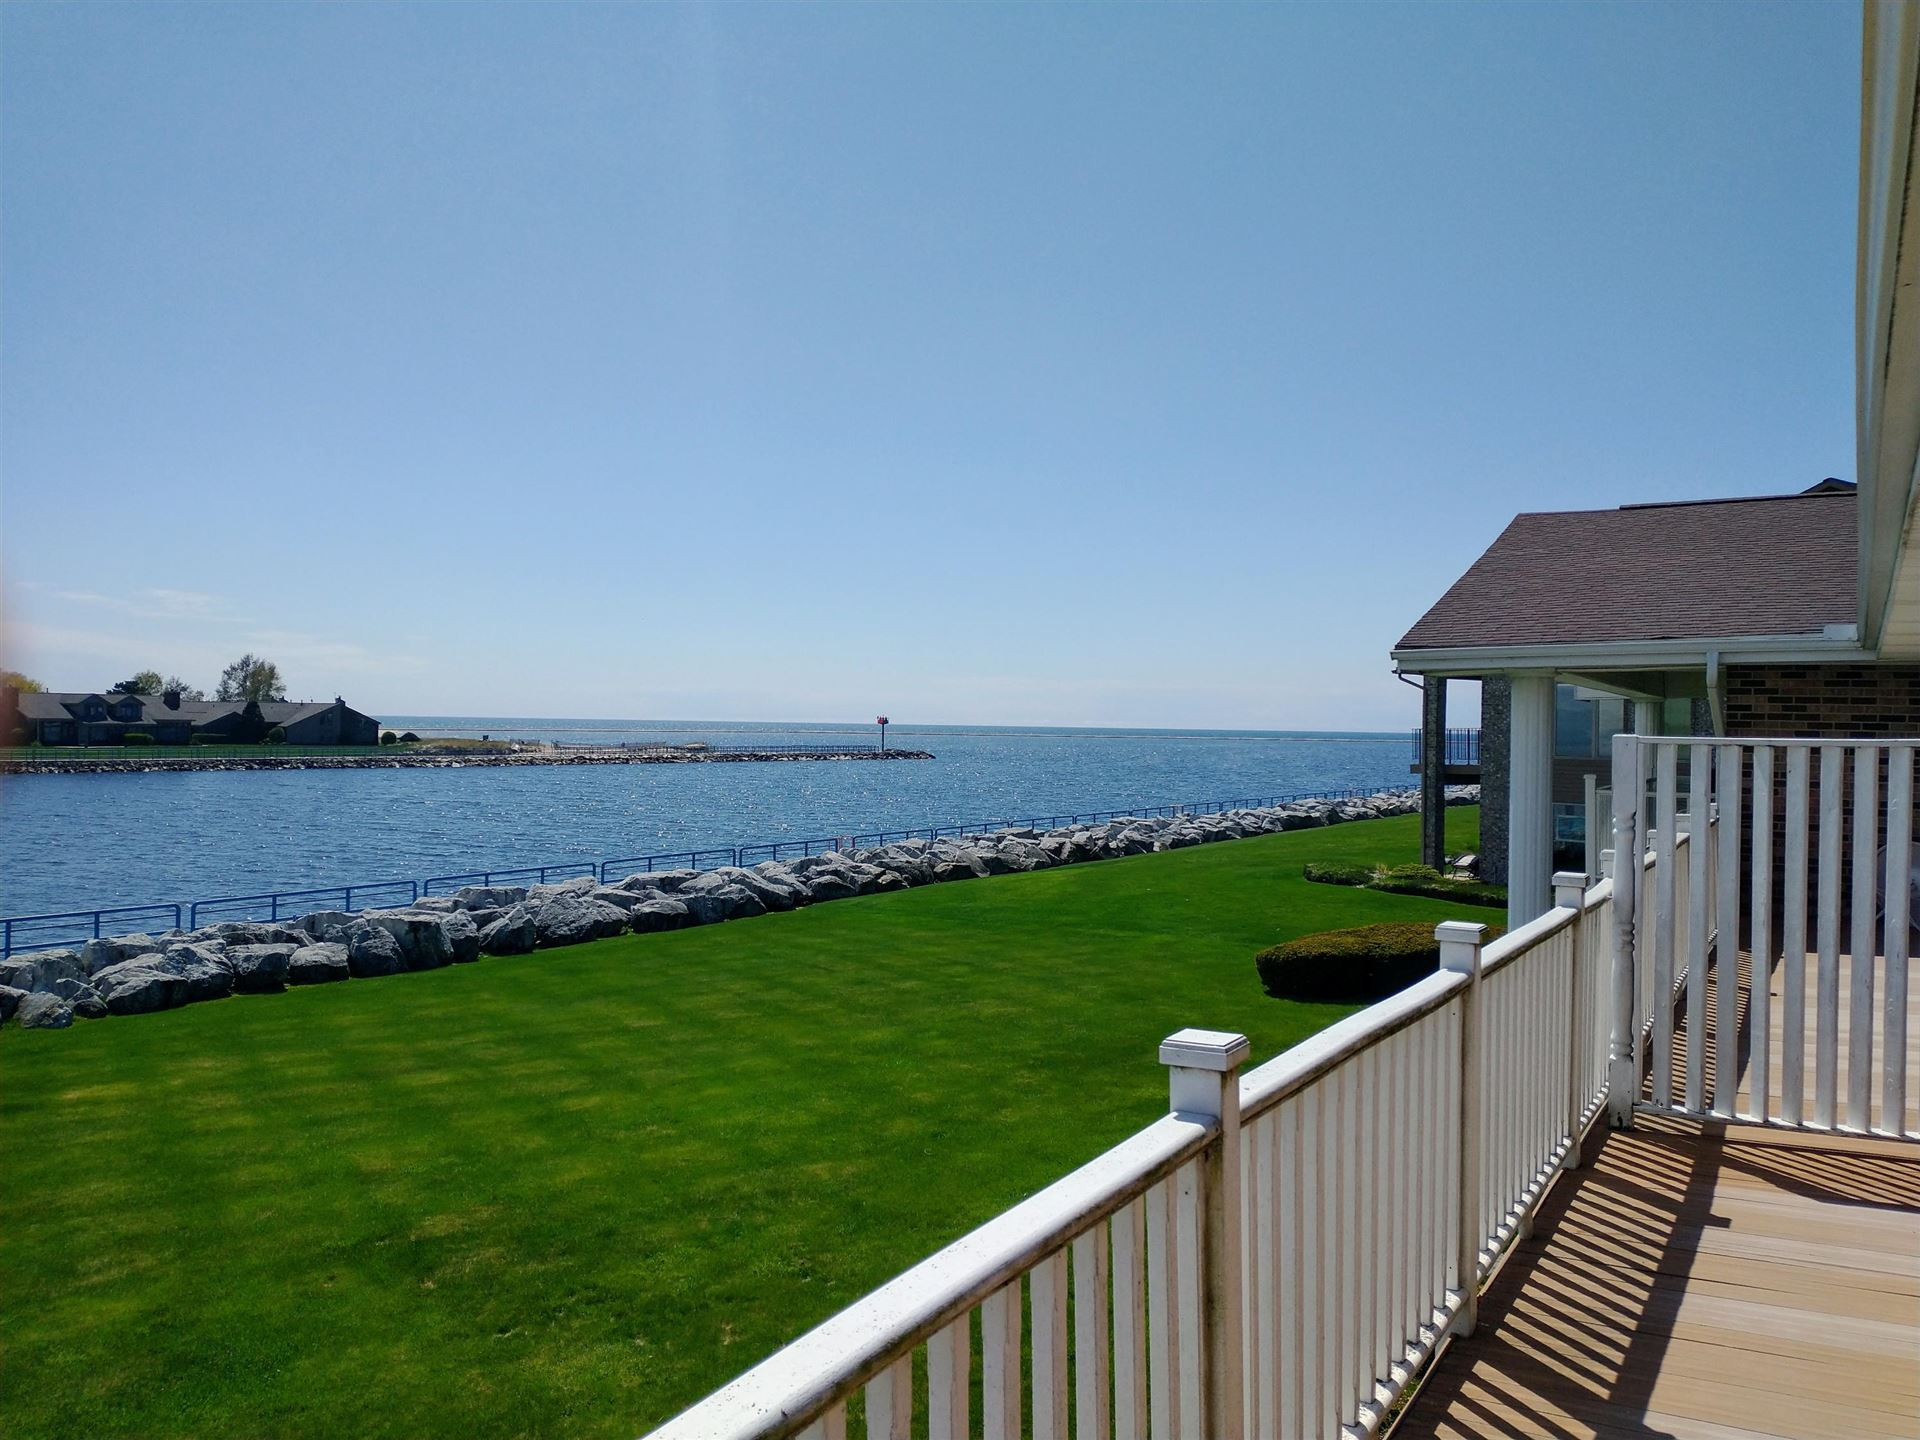 306 S Ferry Street #14, Ludington, MI 49431 - MLS#: 21016168